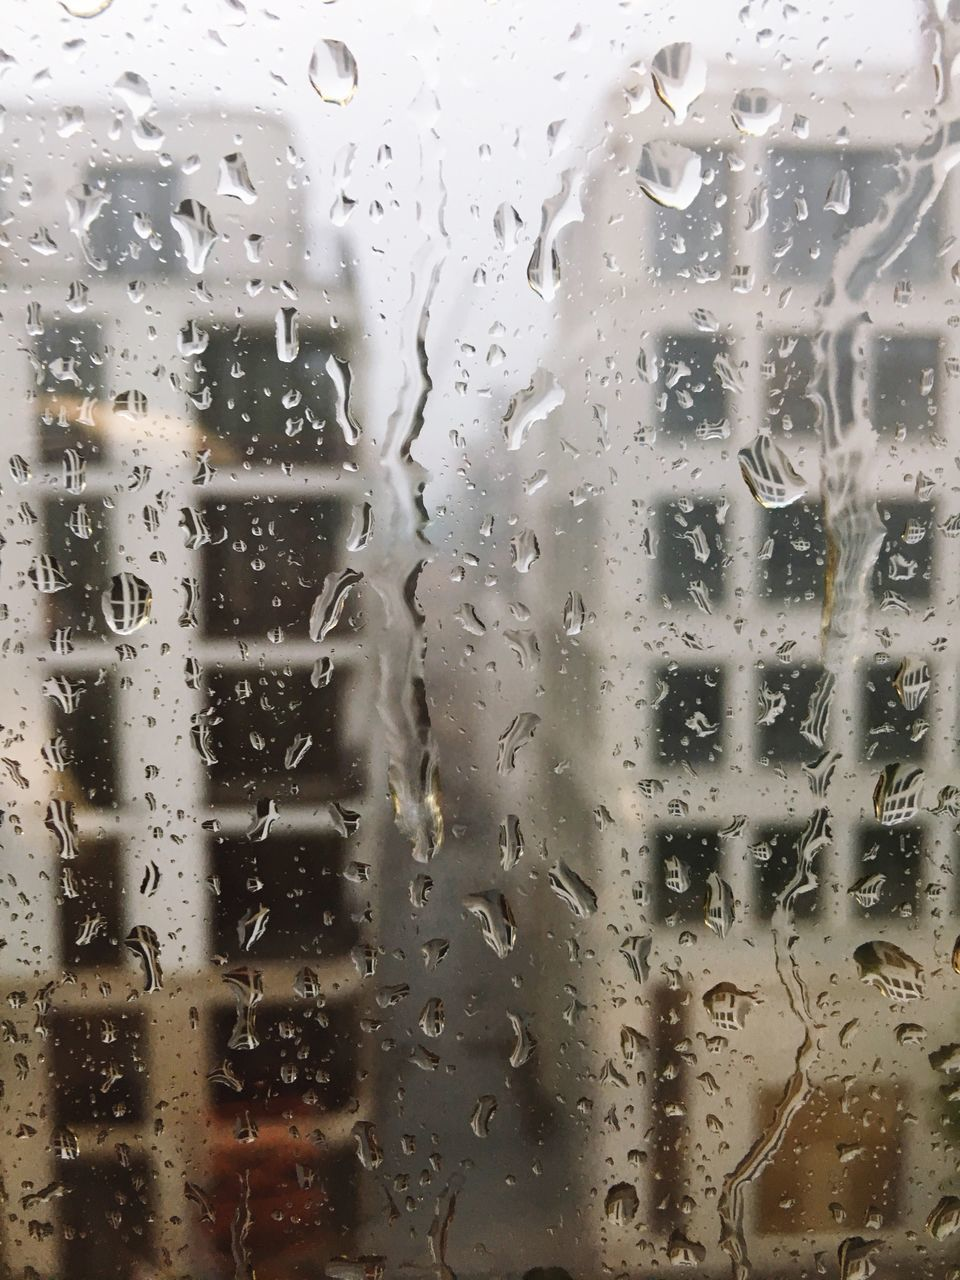 drop, water, wet, rain, glass - material, window, weather, raindrop, condensation, close-up, full frame, no people, rainy season, indoors, refreshment, backgrounds, day, freshness, nature, sky